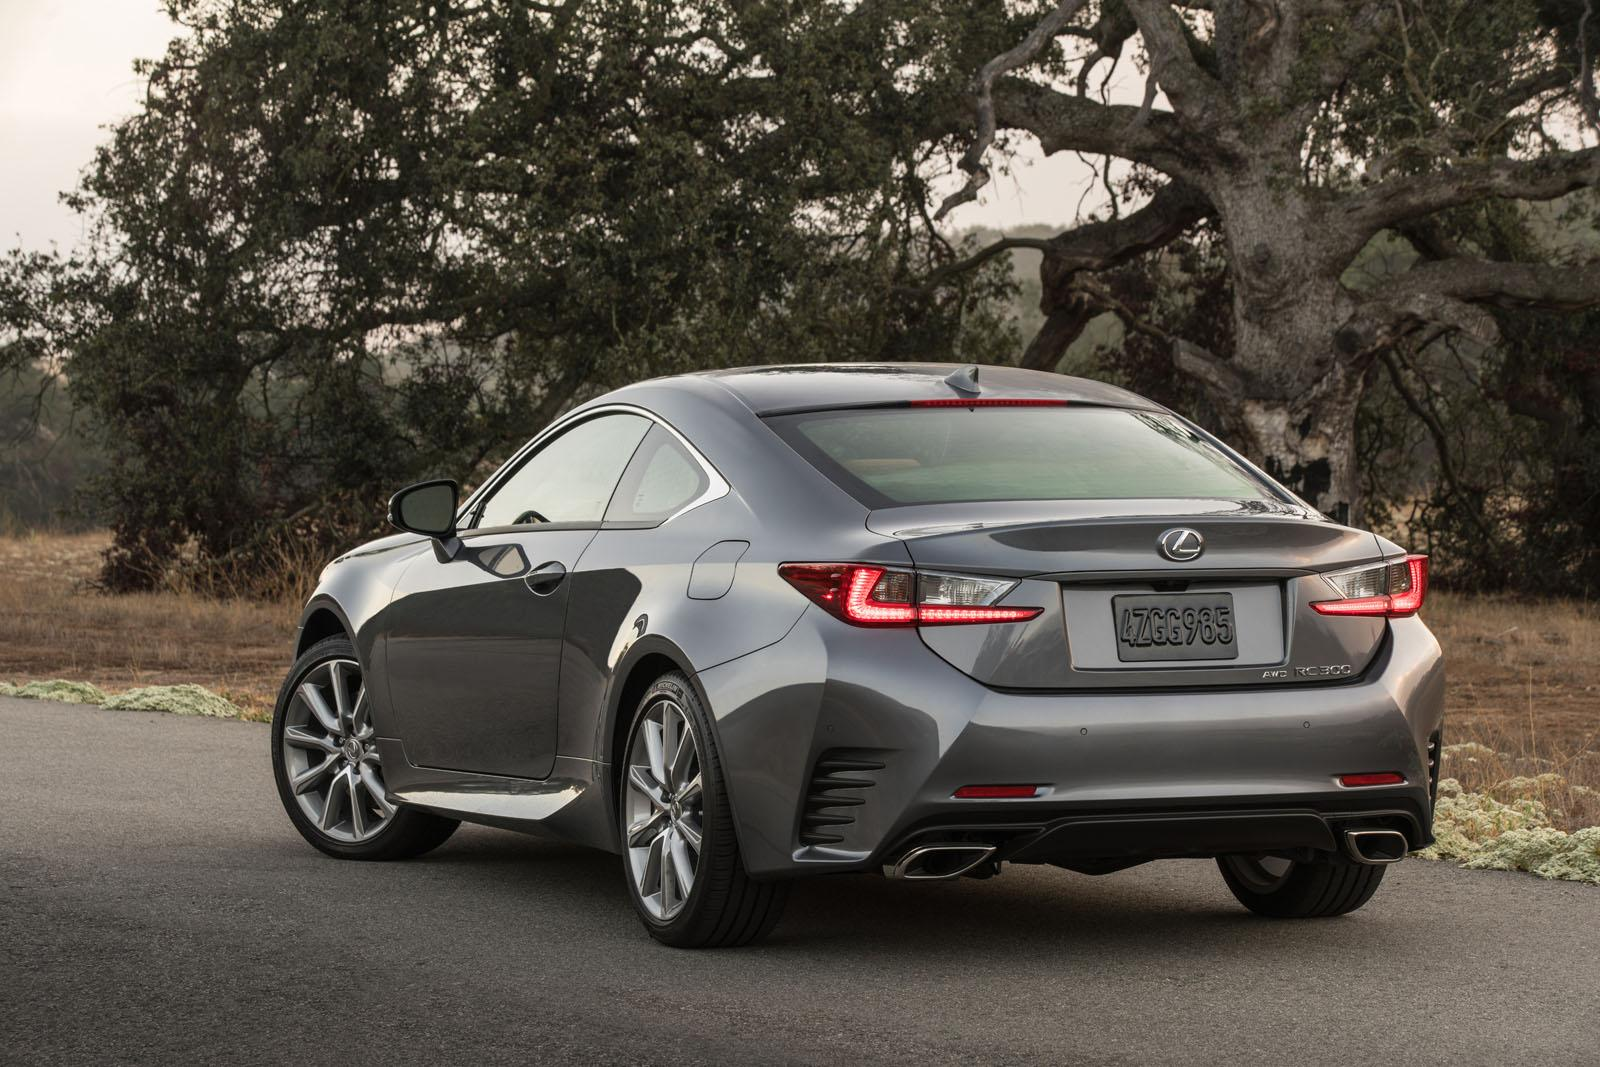 2016 lexus rc coupe revealed gets 200t model with 241 hp 2 liter turbo autoevolution. Black Bedroom Furniture Sets. Home Design Ideas